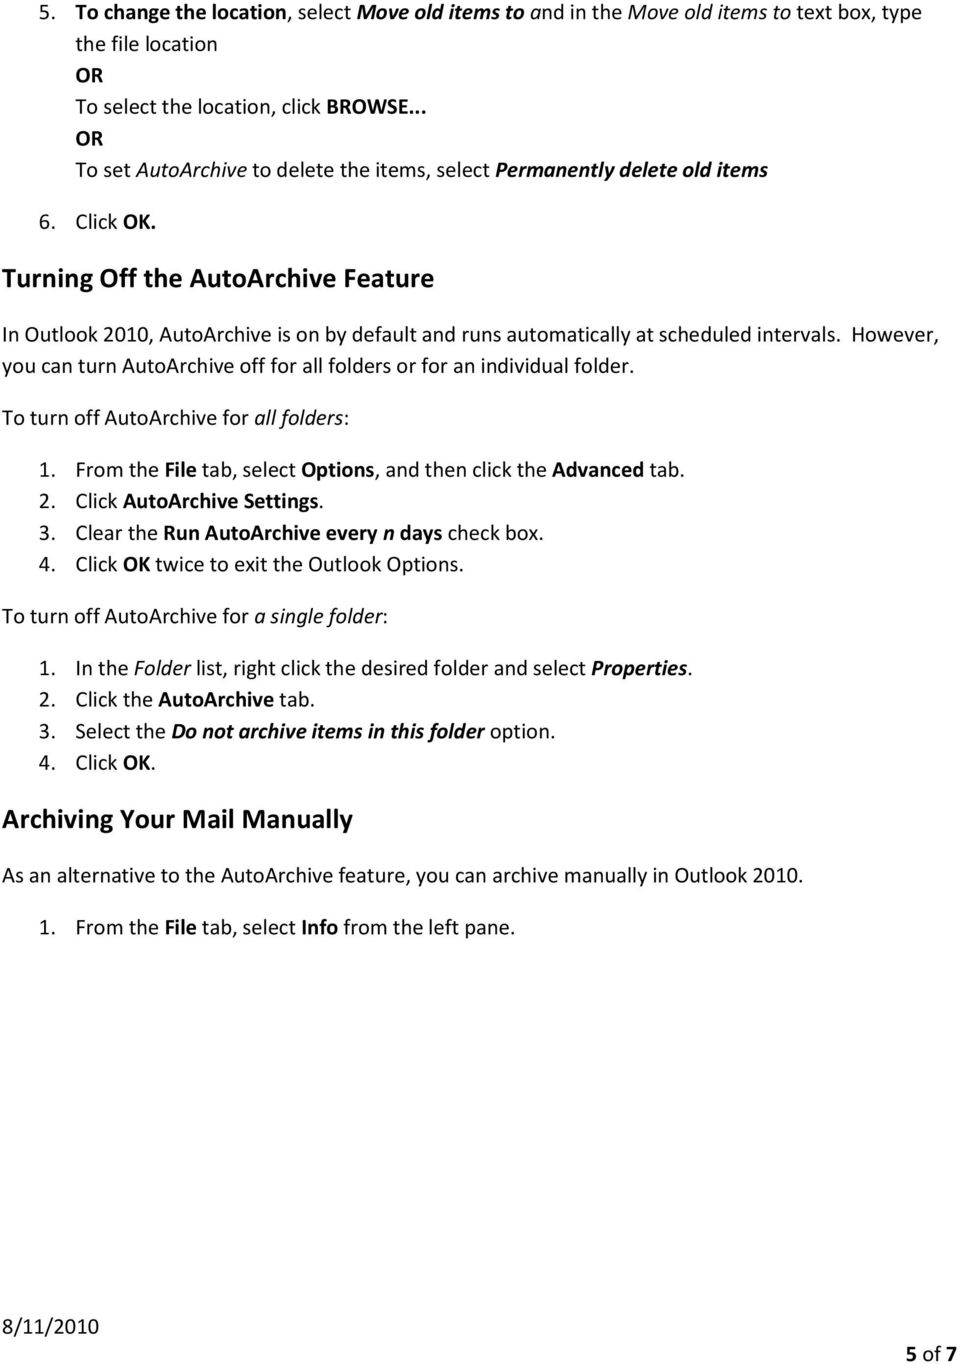 Turning the AutoArchive Feature In Outlook 2010, AutoArchive is on by default and runs automatically at scheduled intervals.